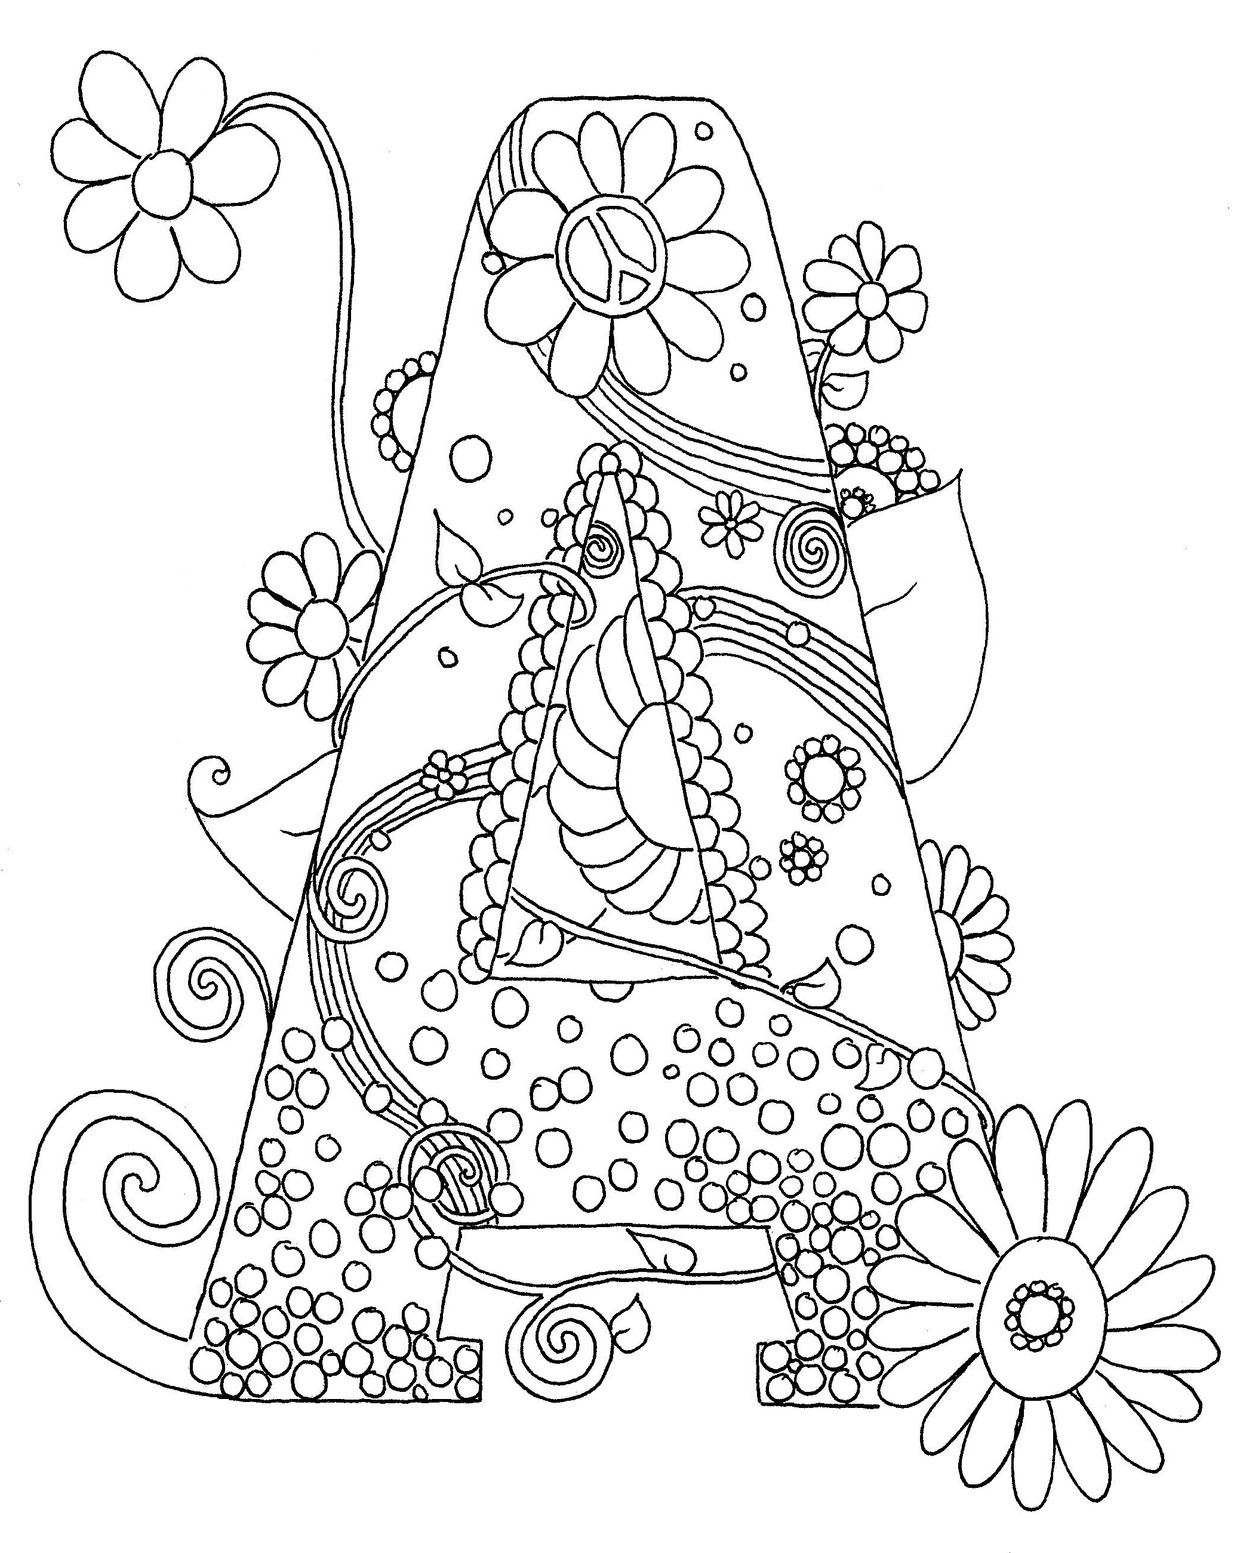 hippie coloring pages - photo#21